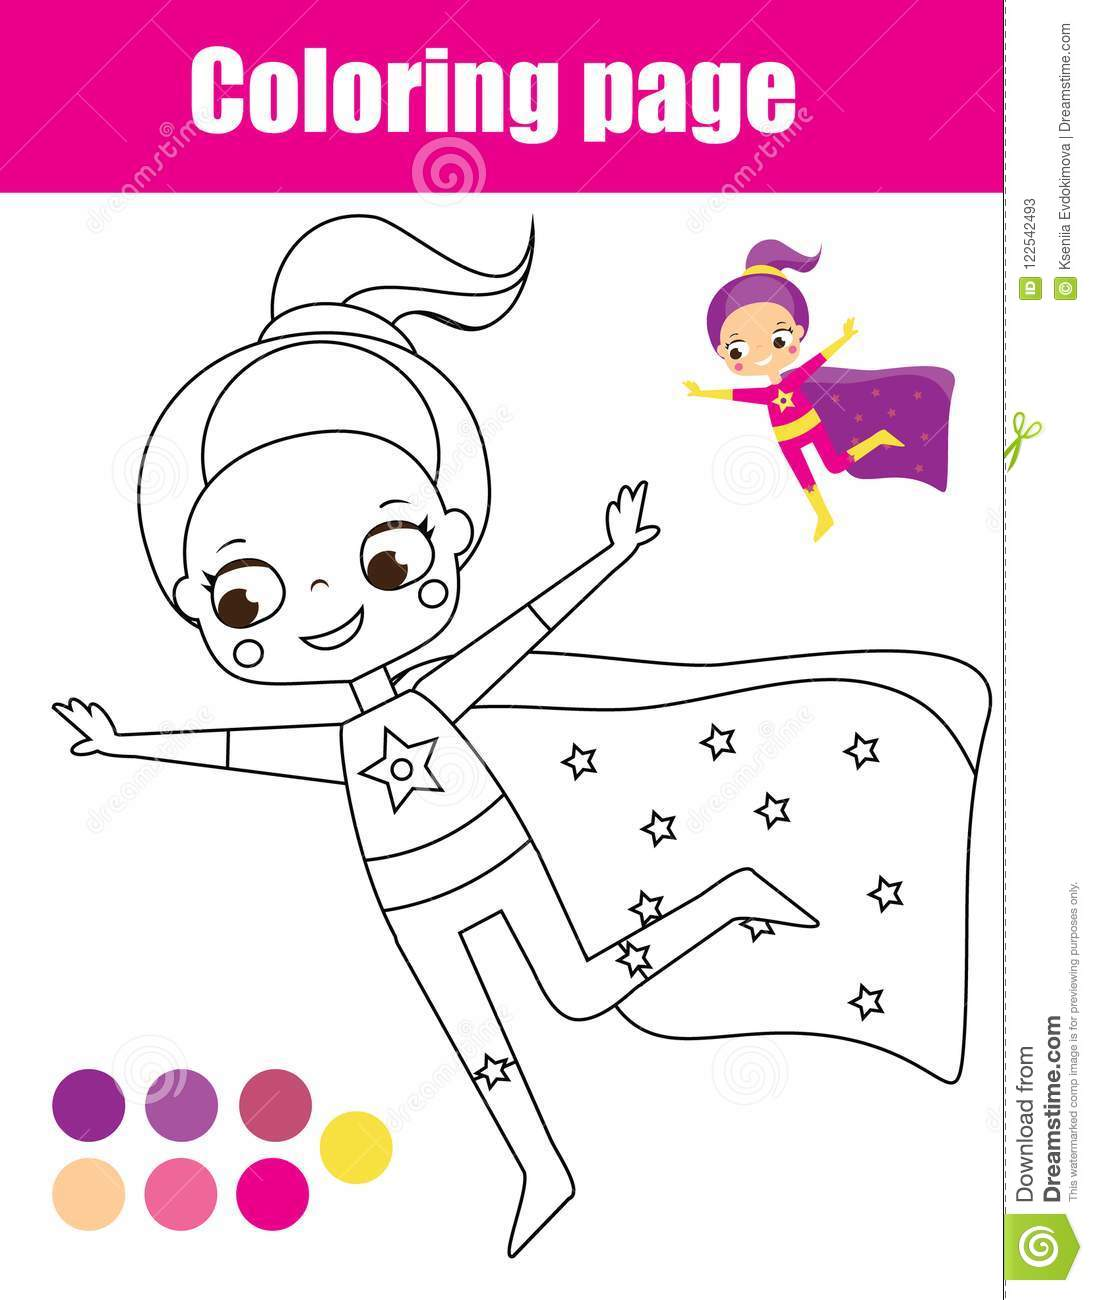 Coloring Page With Superhero Girl Drawing Kids Activity